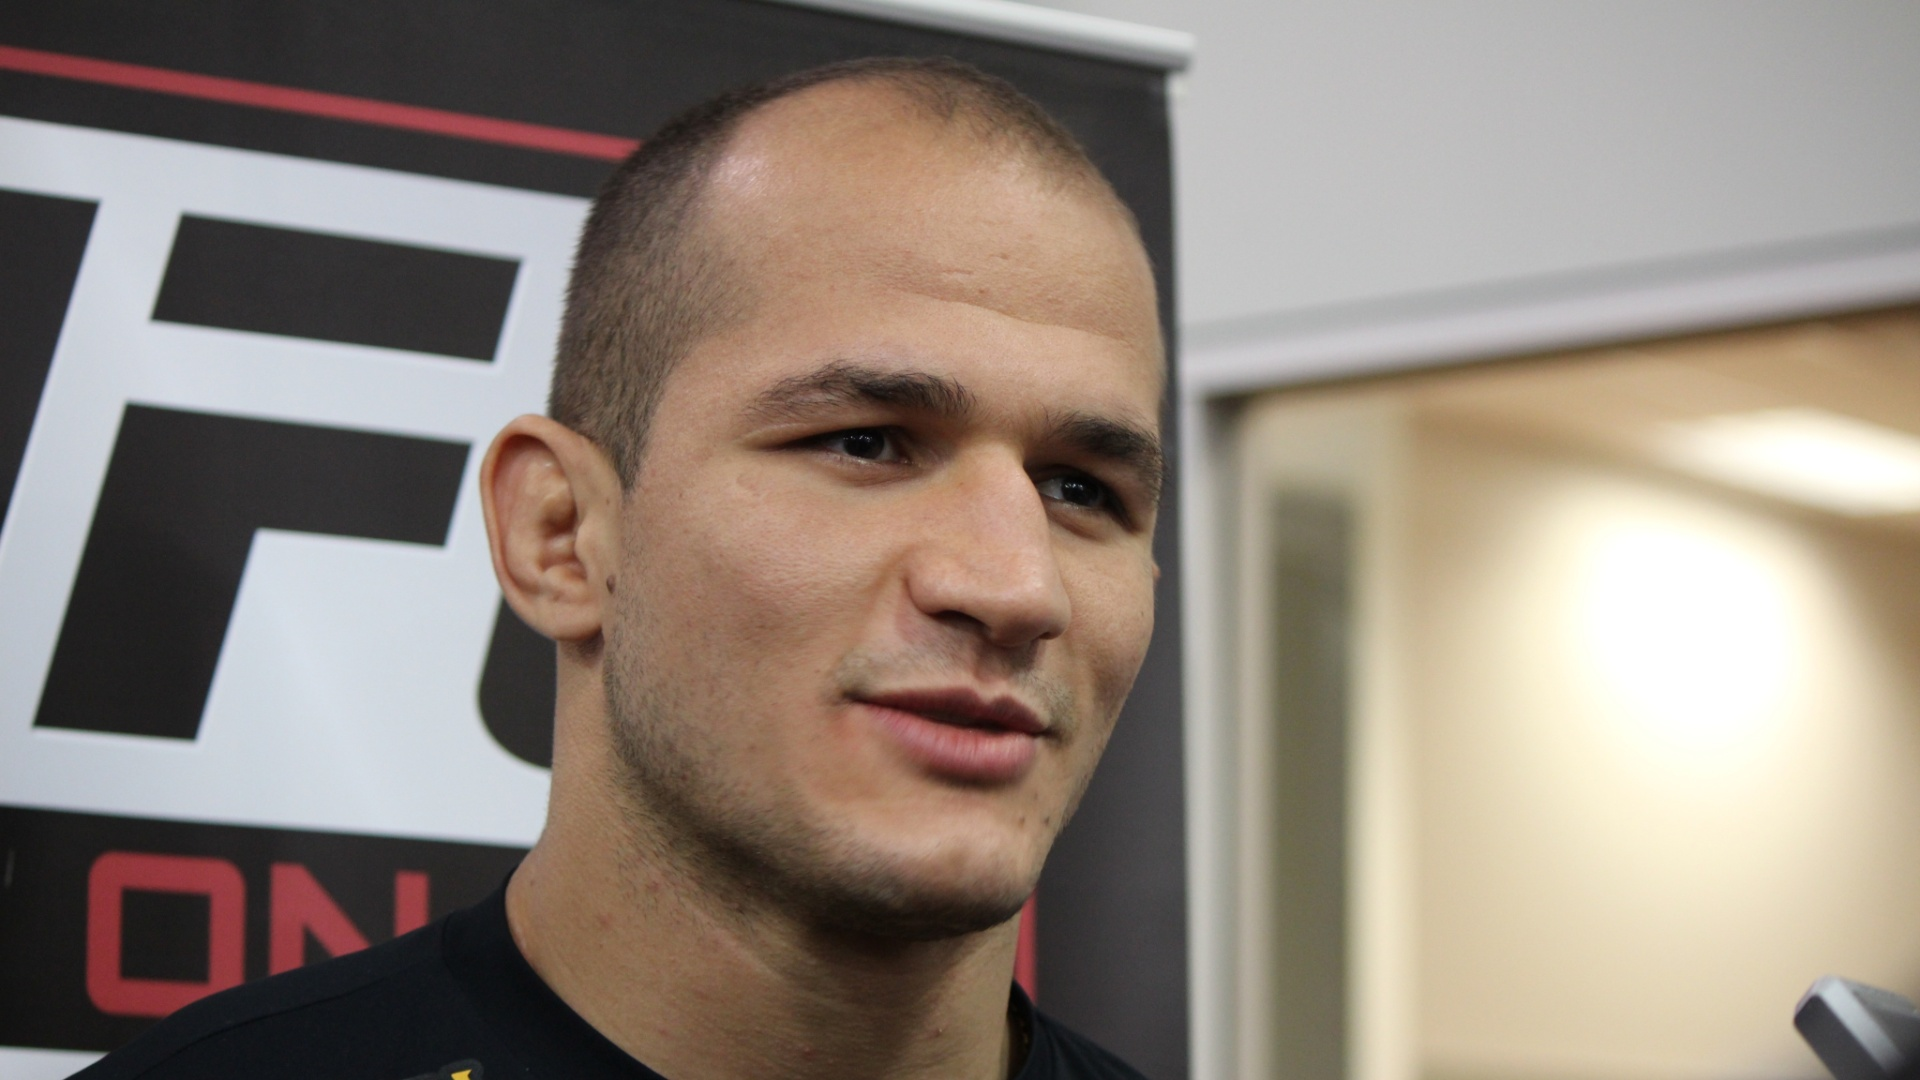 Junior Cigano concede entrevista antes da disputa do cinturo dos pesos pesados do UFC